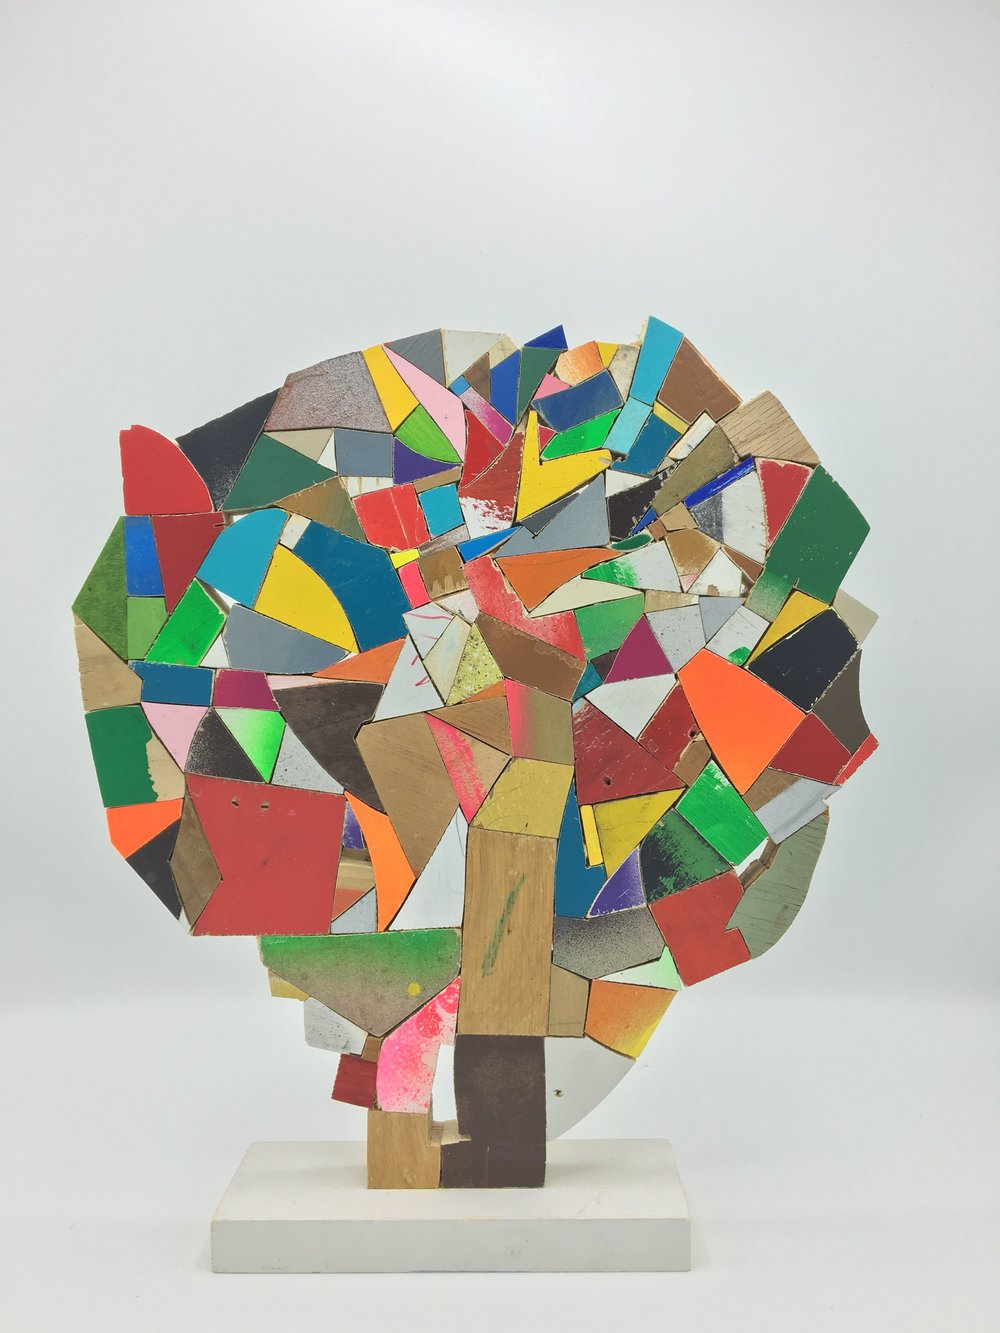 Brain , 2016   [private collection New York, NY]  Wood, Paint, Colored Pencil, Glue    13 x 11 x 2 in. SOLD